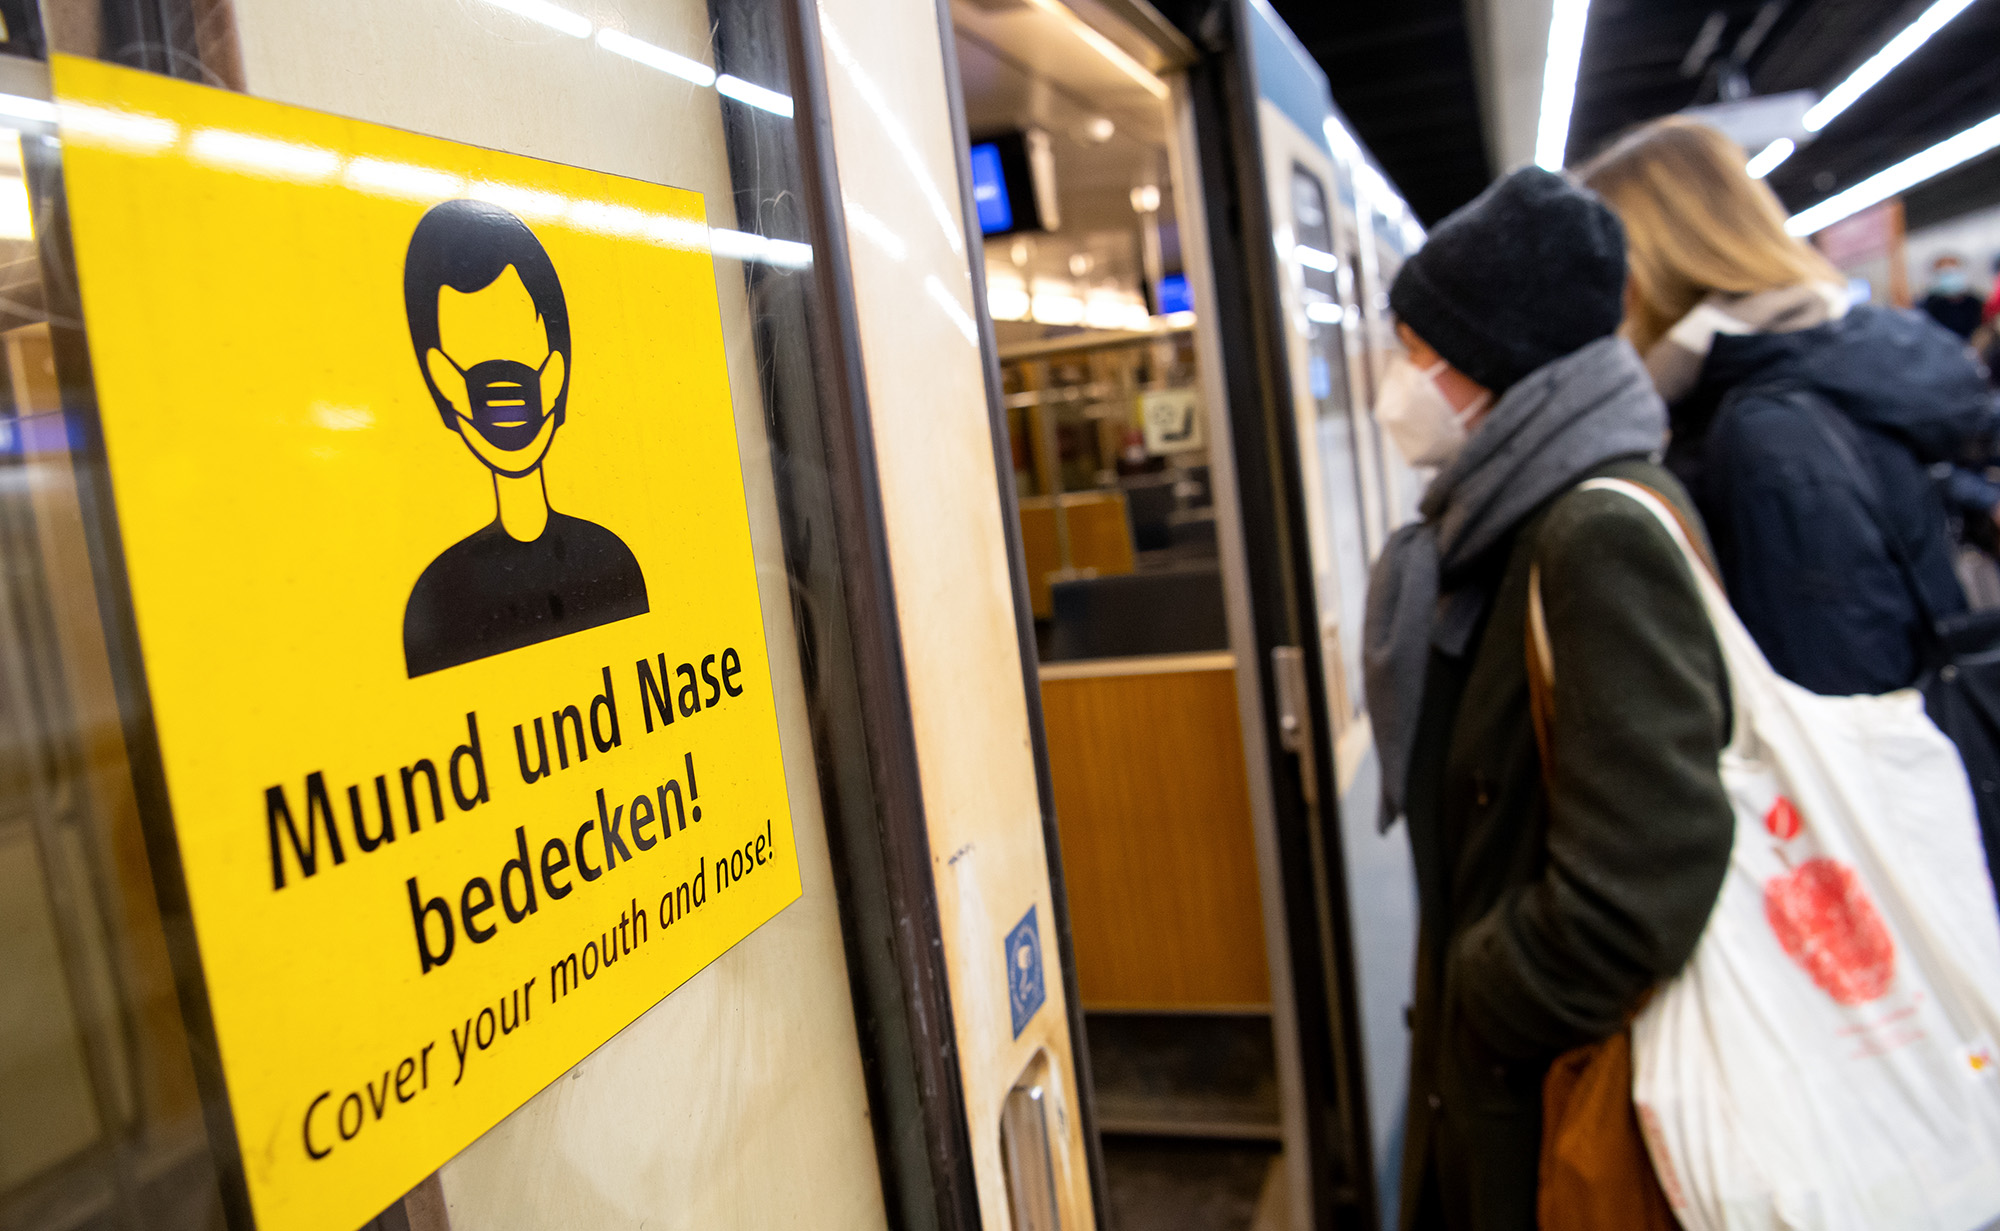 Two women wearing FFP2 masks board a train in Bavaria, on January 12, 2021.